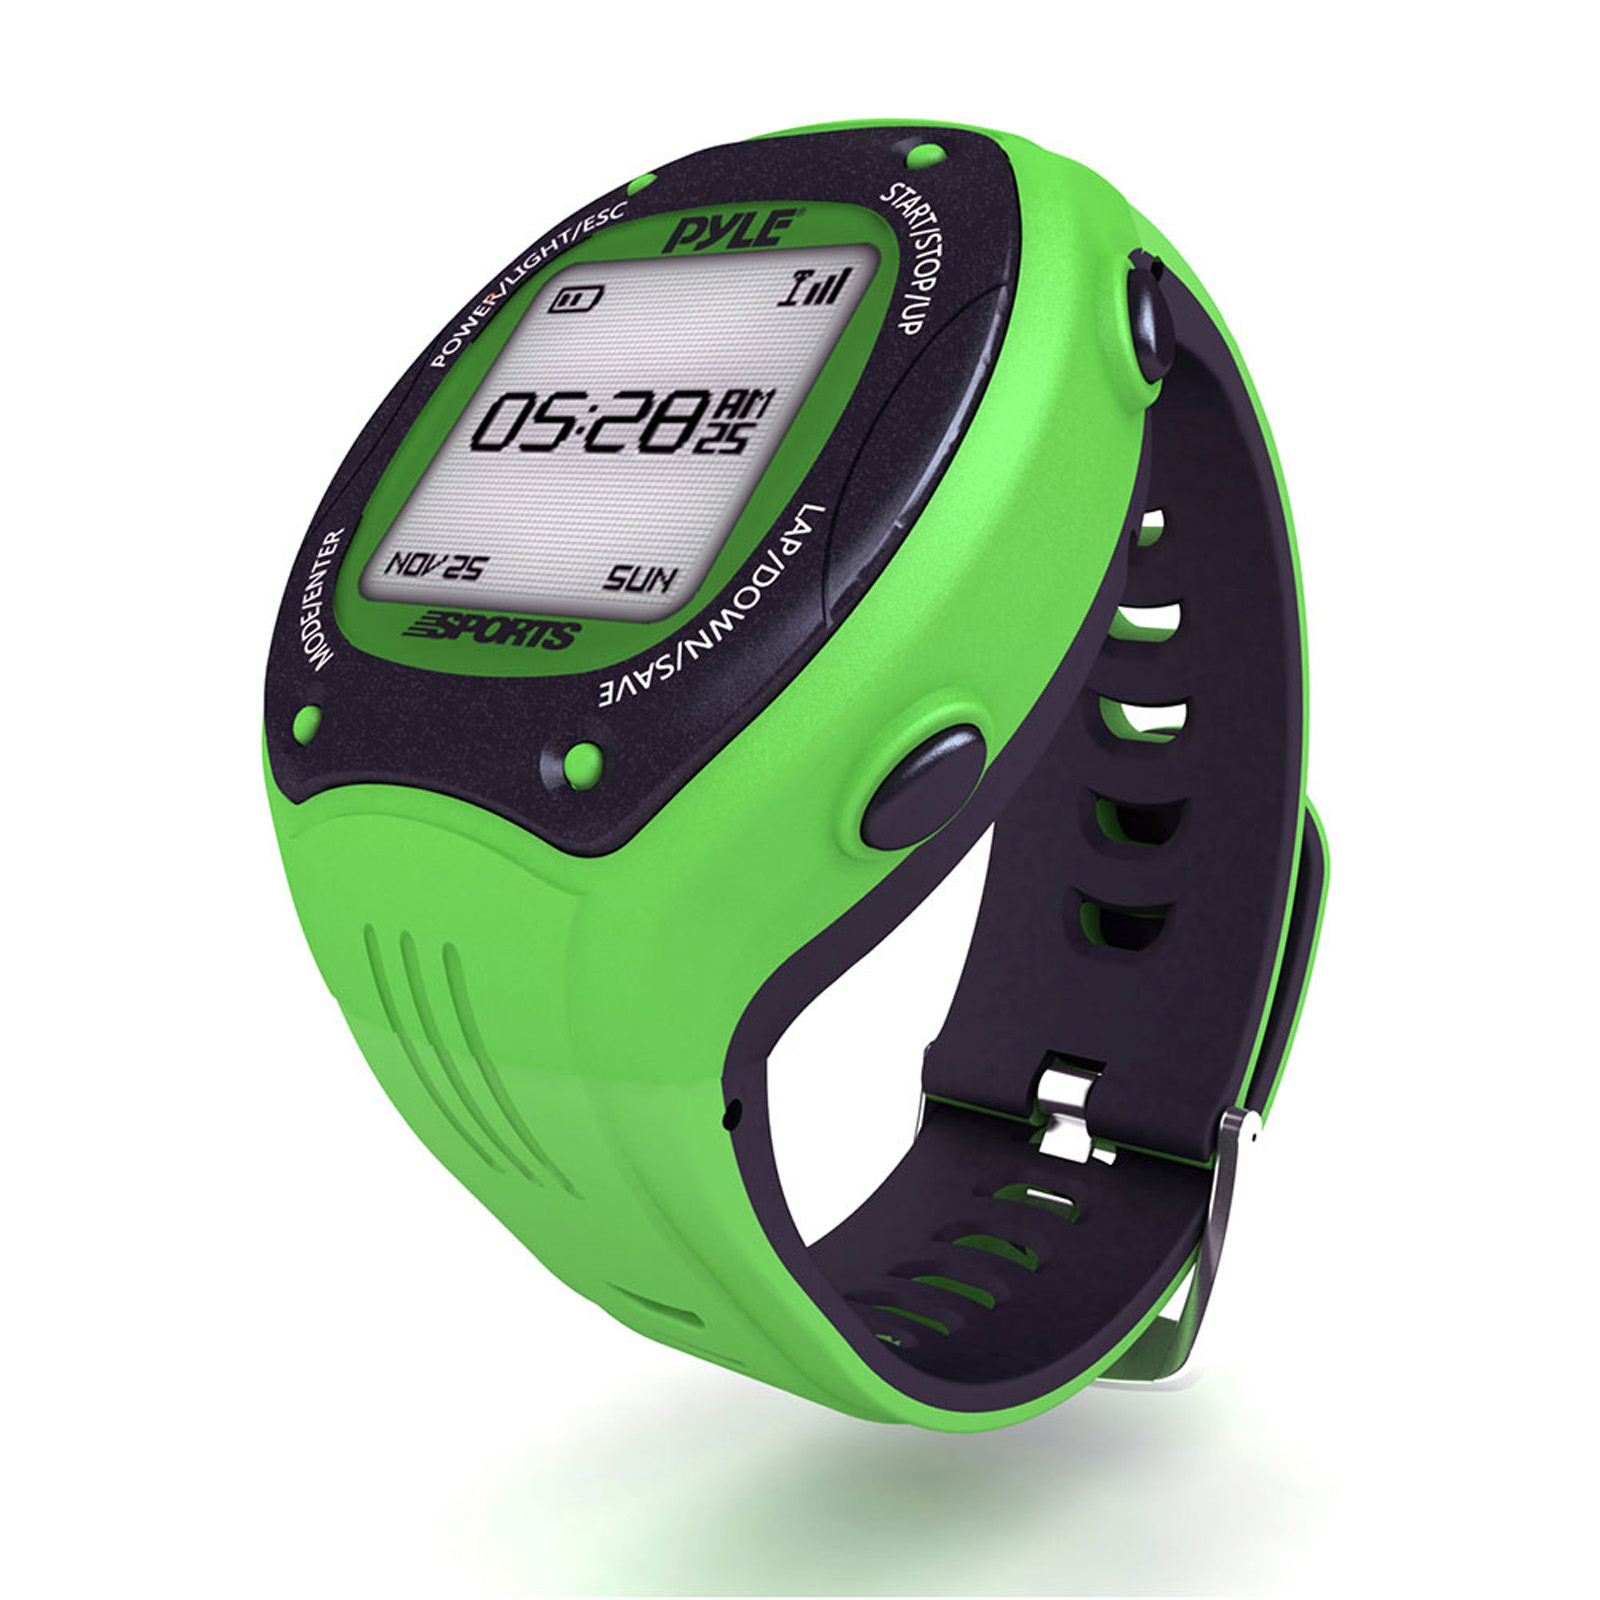 Pyle Multi-Function LED Sports Training Watch with GPS Navigation (Green Color)